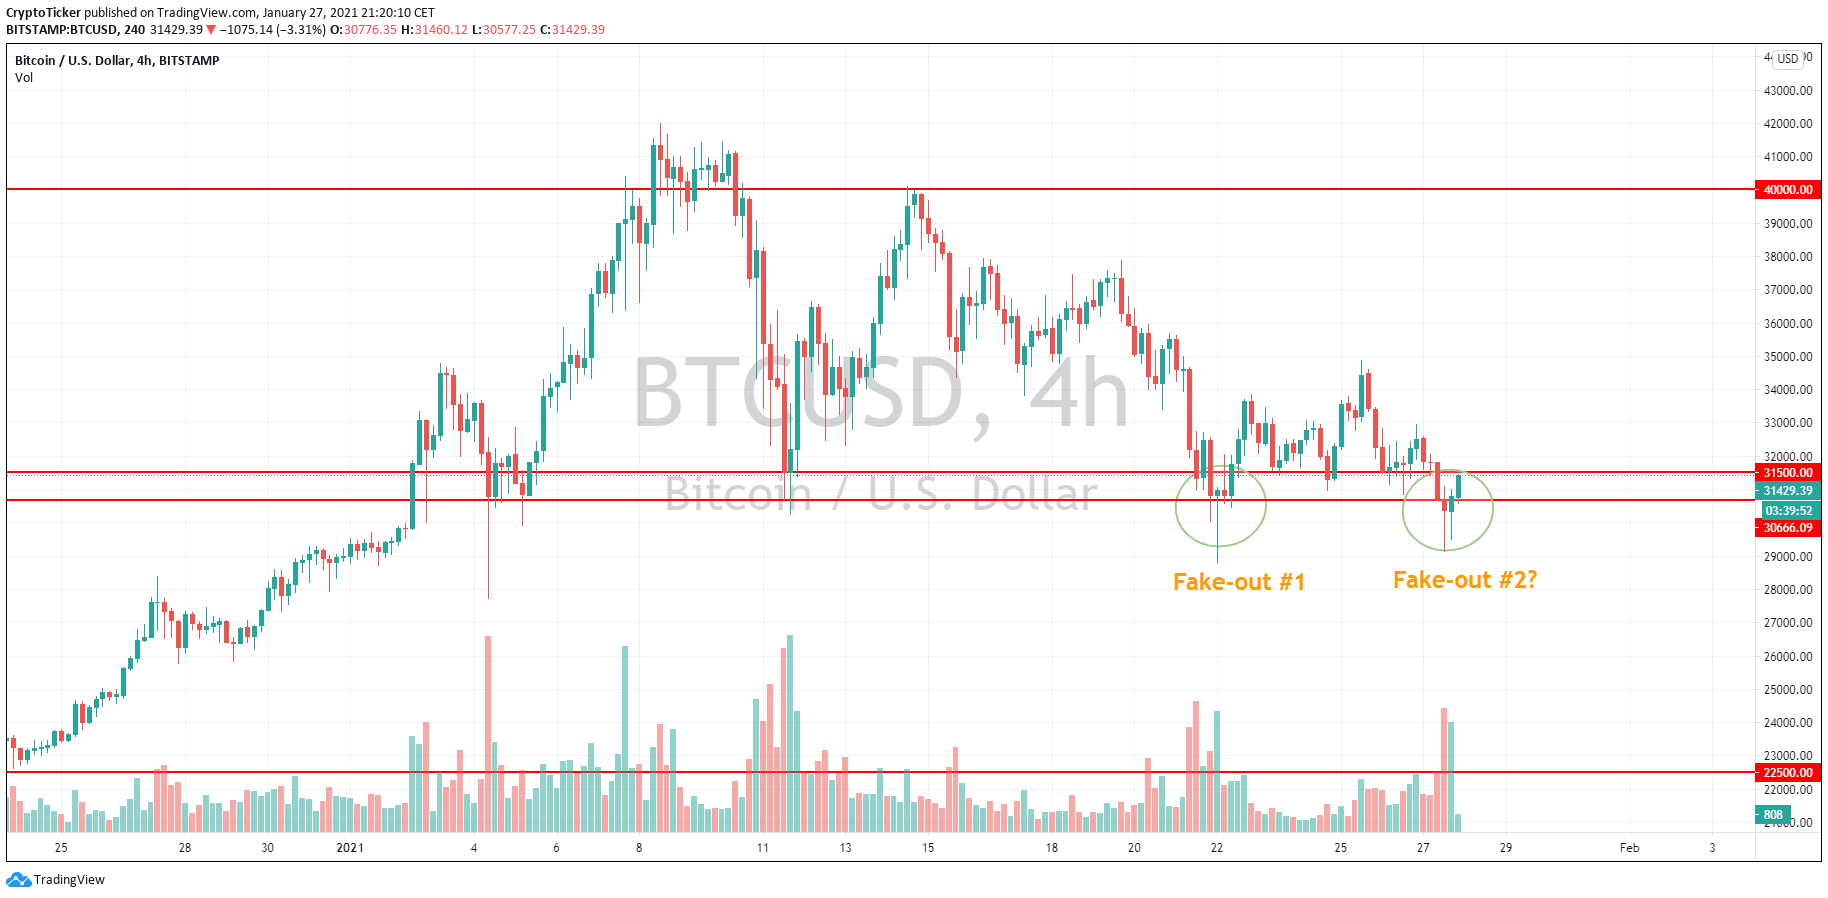 BTC/USD 4-hour chart showing another potential fakeout